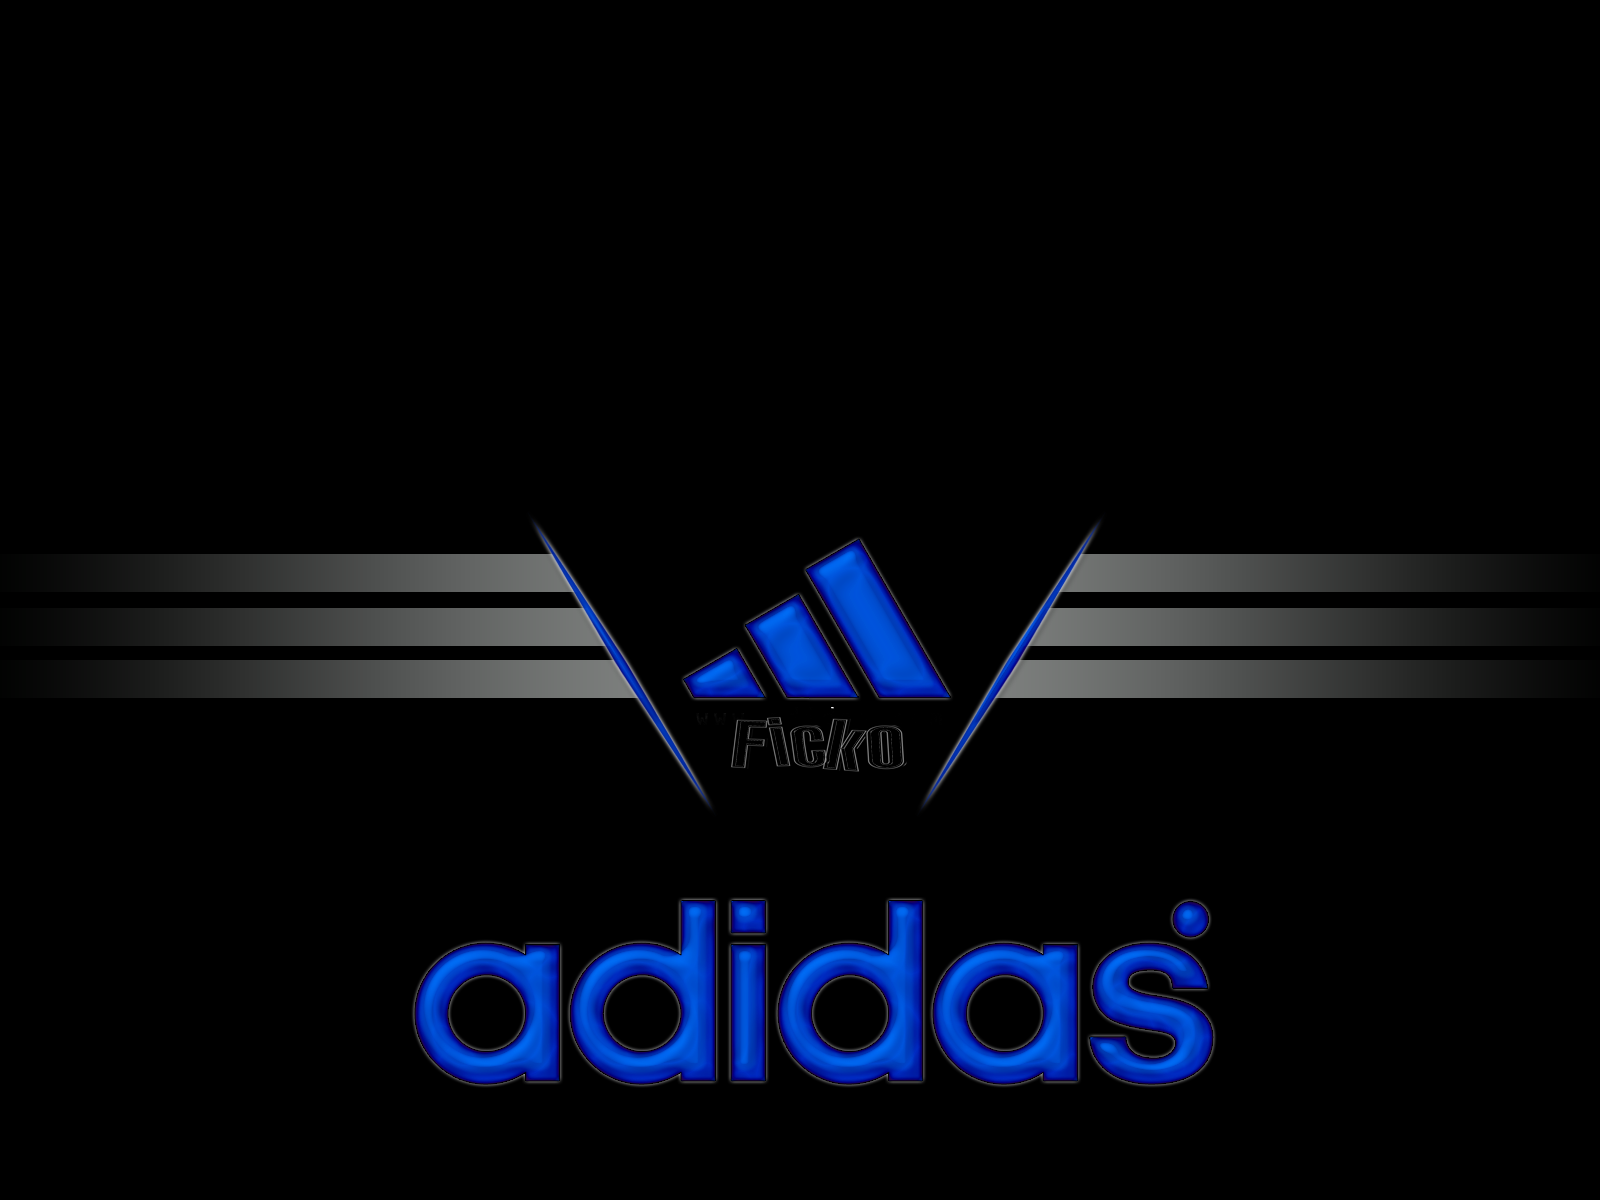 Adidas Logo 3d Wallpapers Hd Adidas Logo Black And White 3d